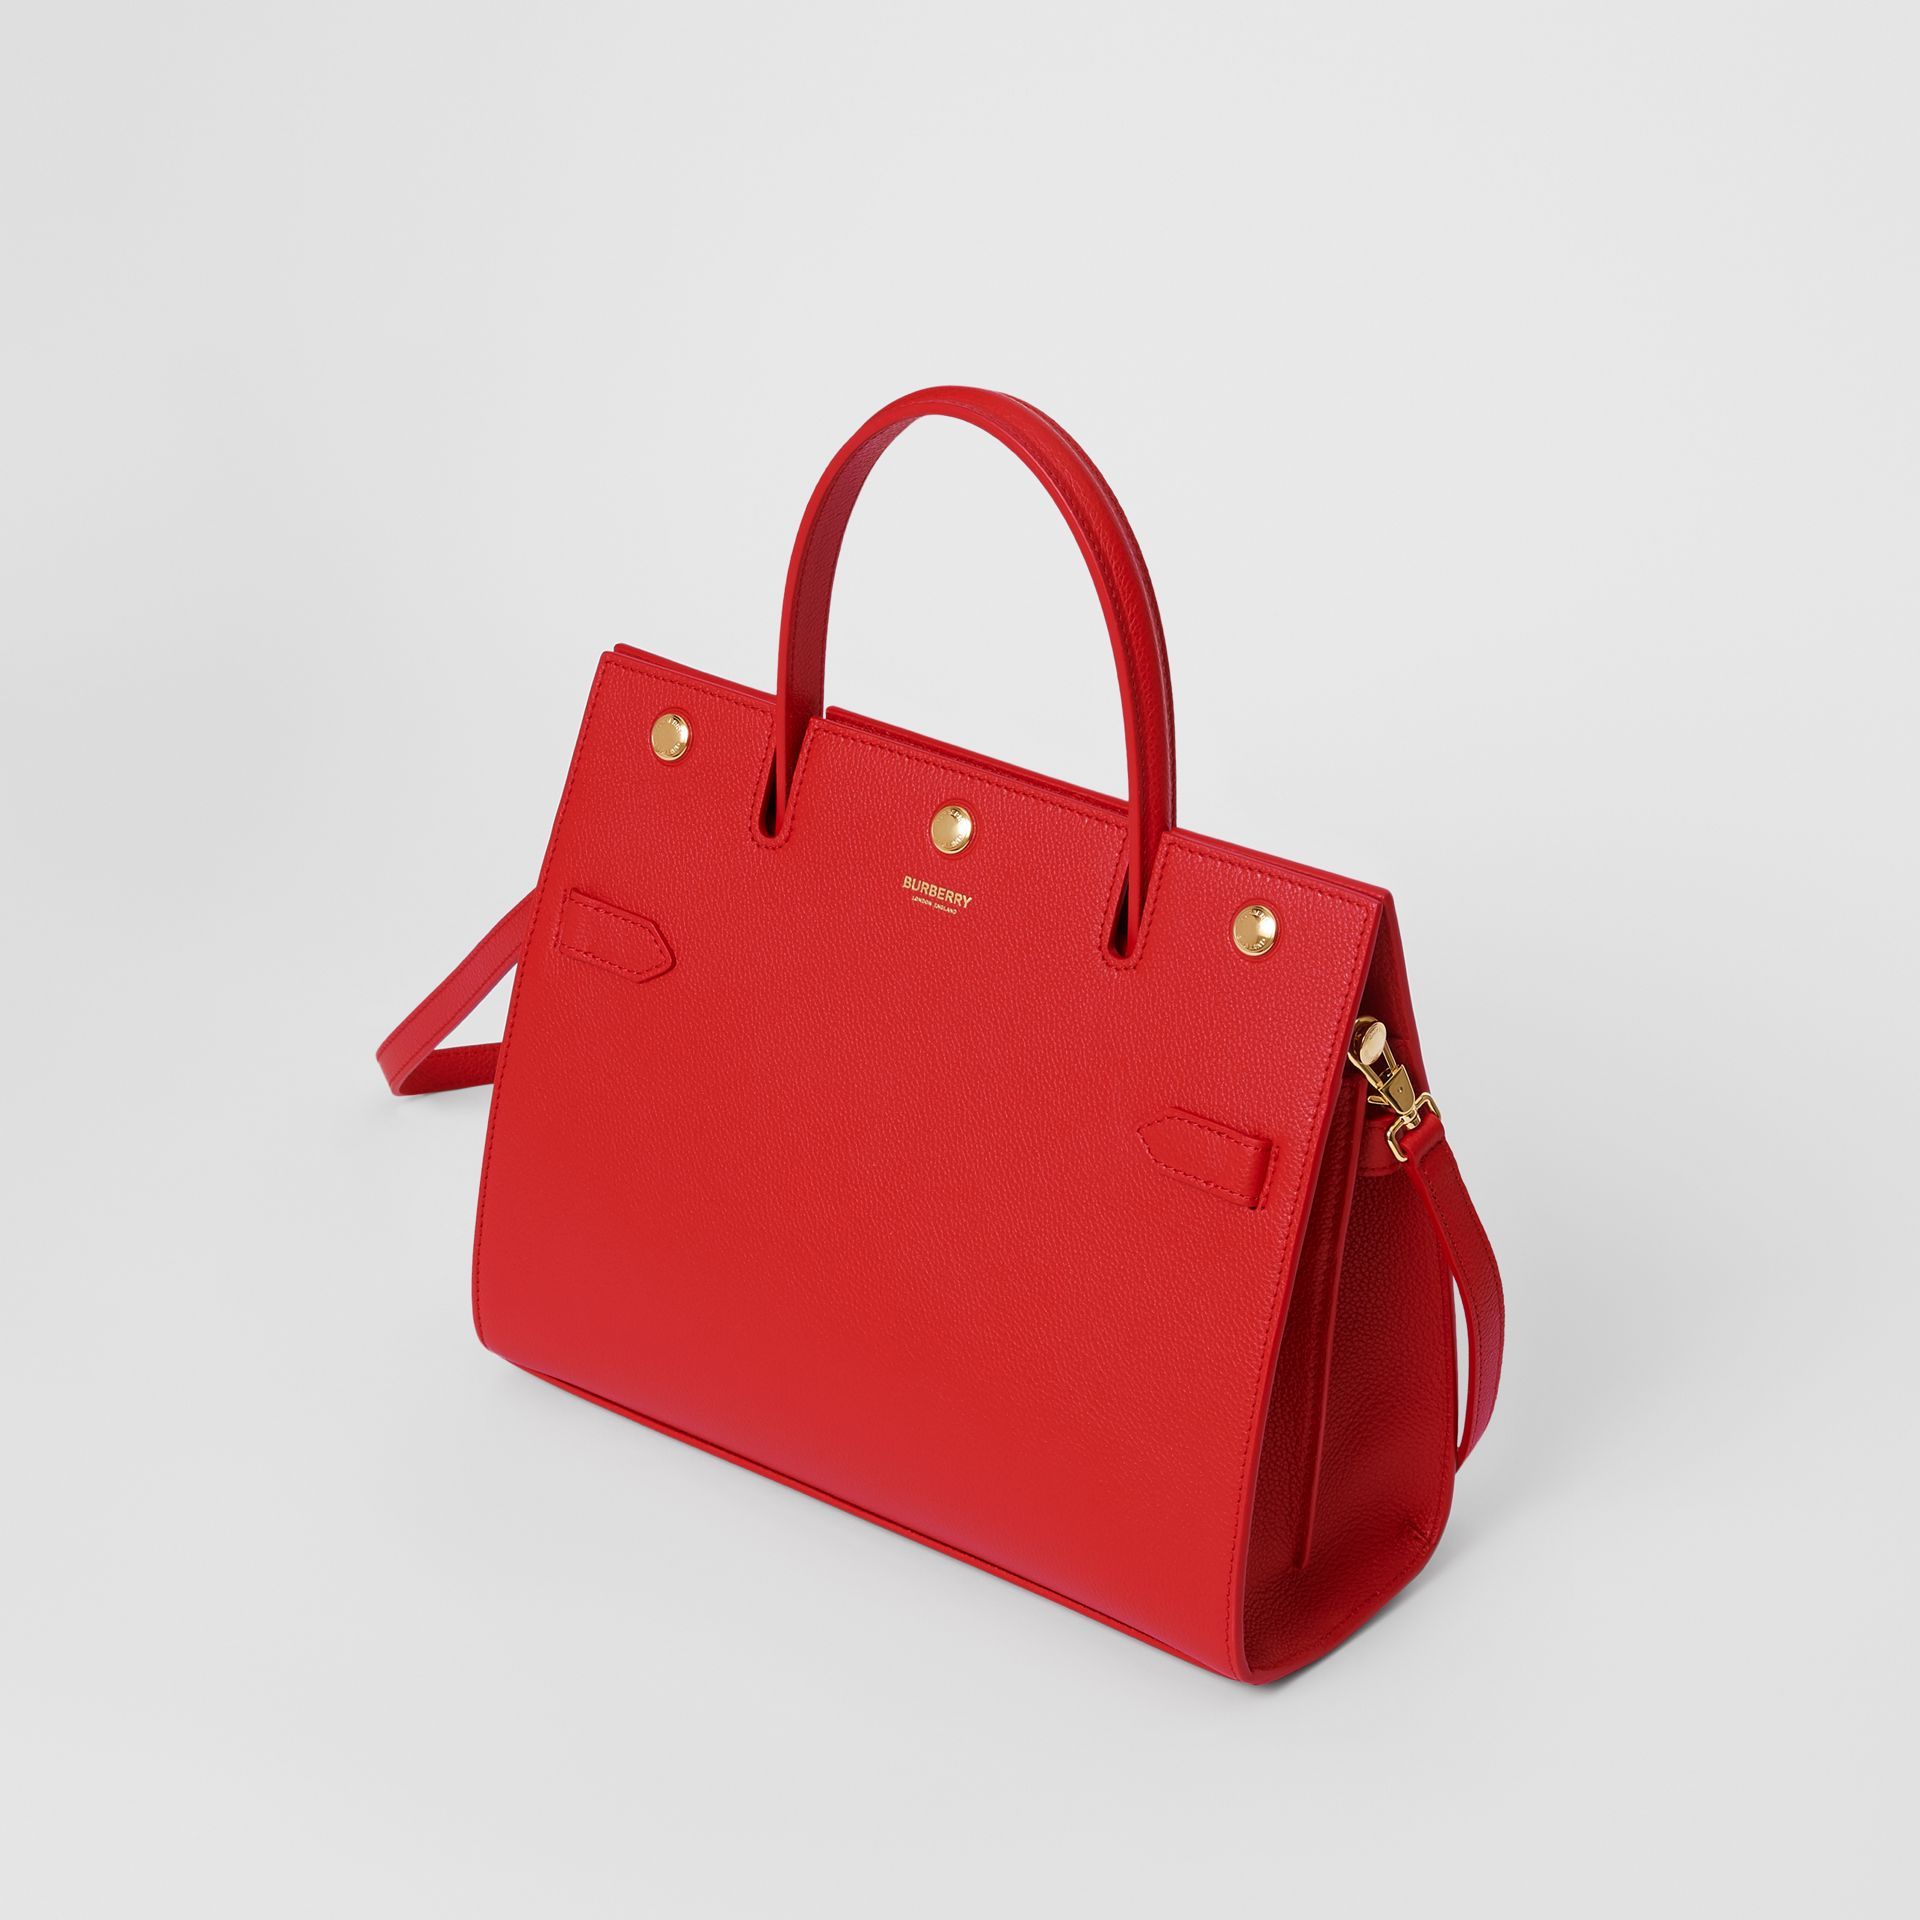 Small Leather Title Bag in Bright Red - Women | Burberry - gallery image 3